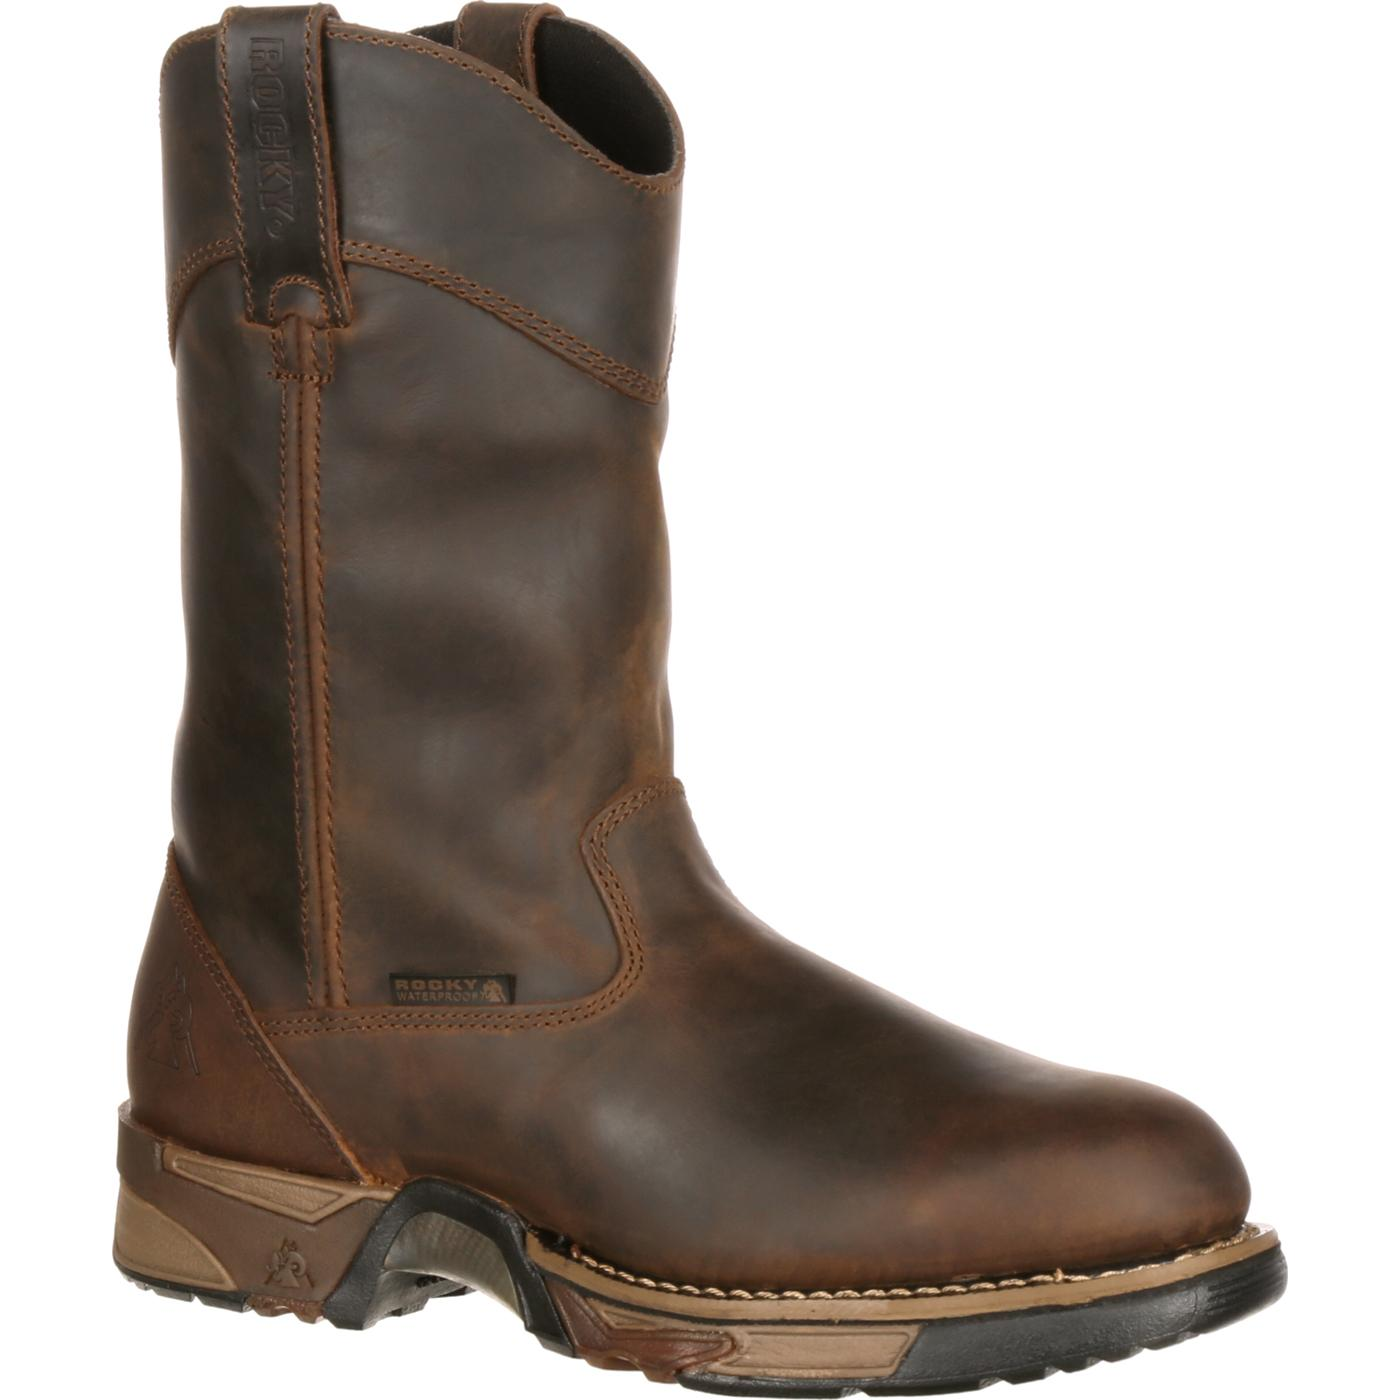 3c63dc179e7 Rocky Steel Toe Waterproof Wellington Work Boot